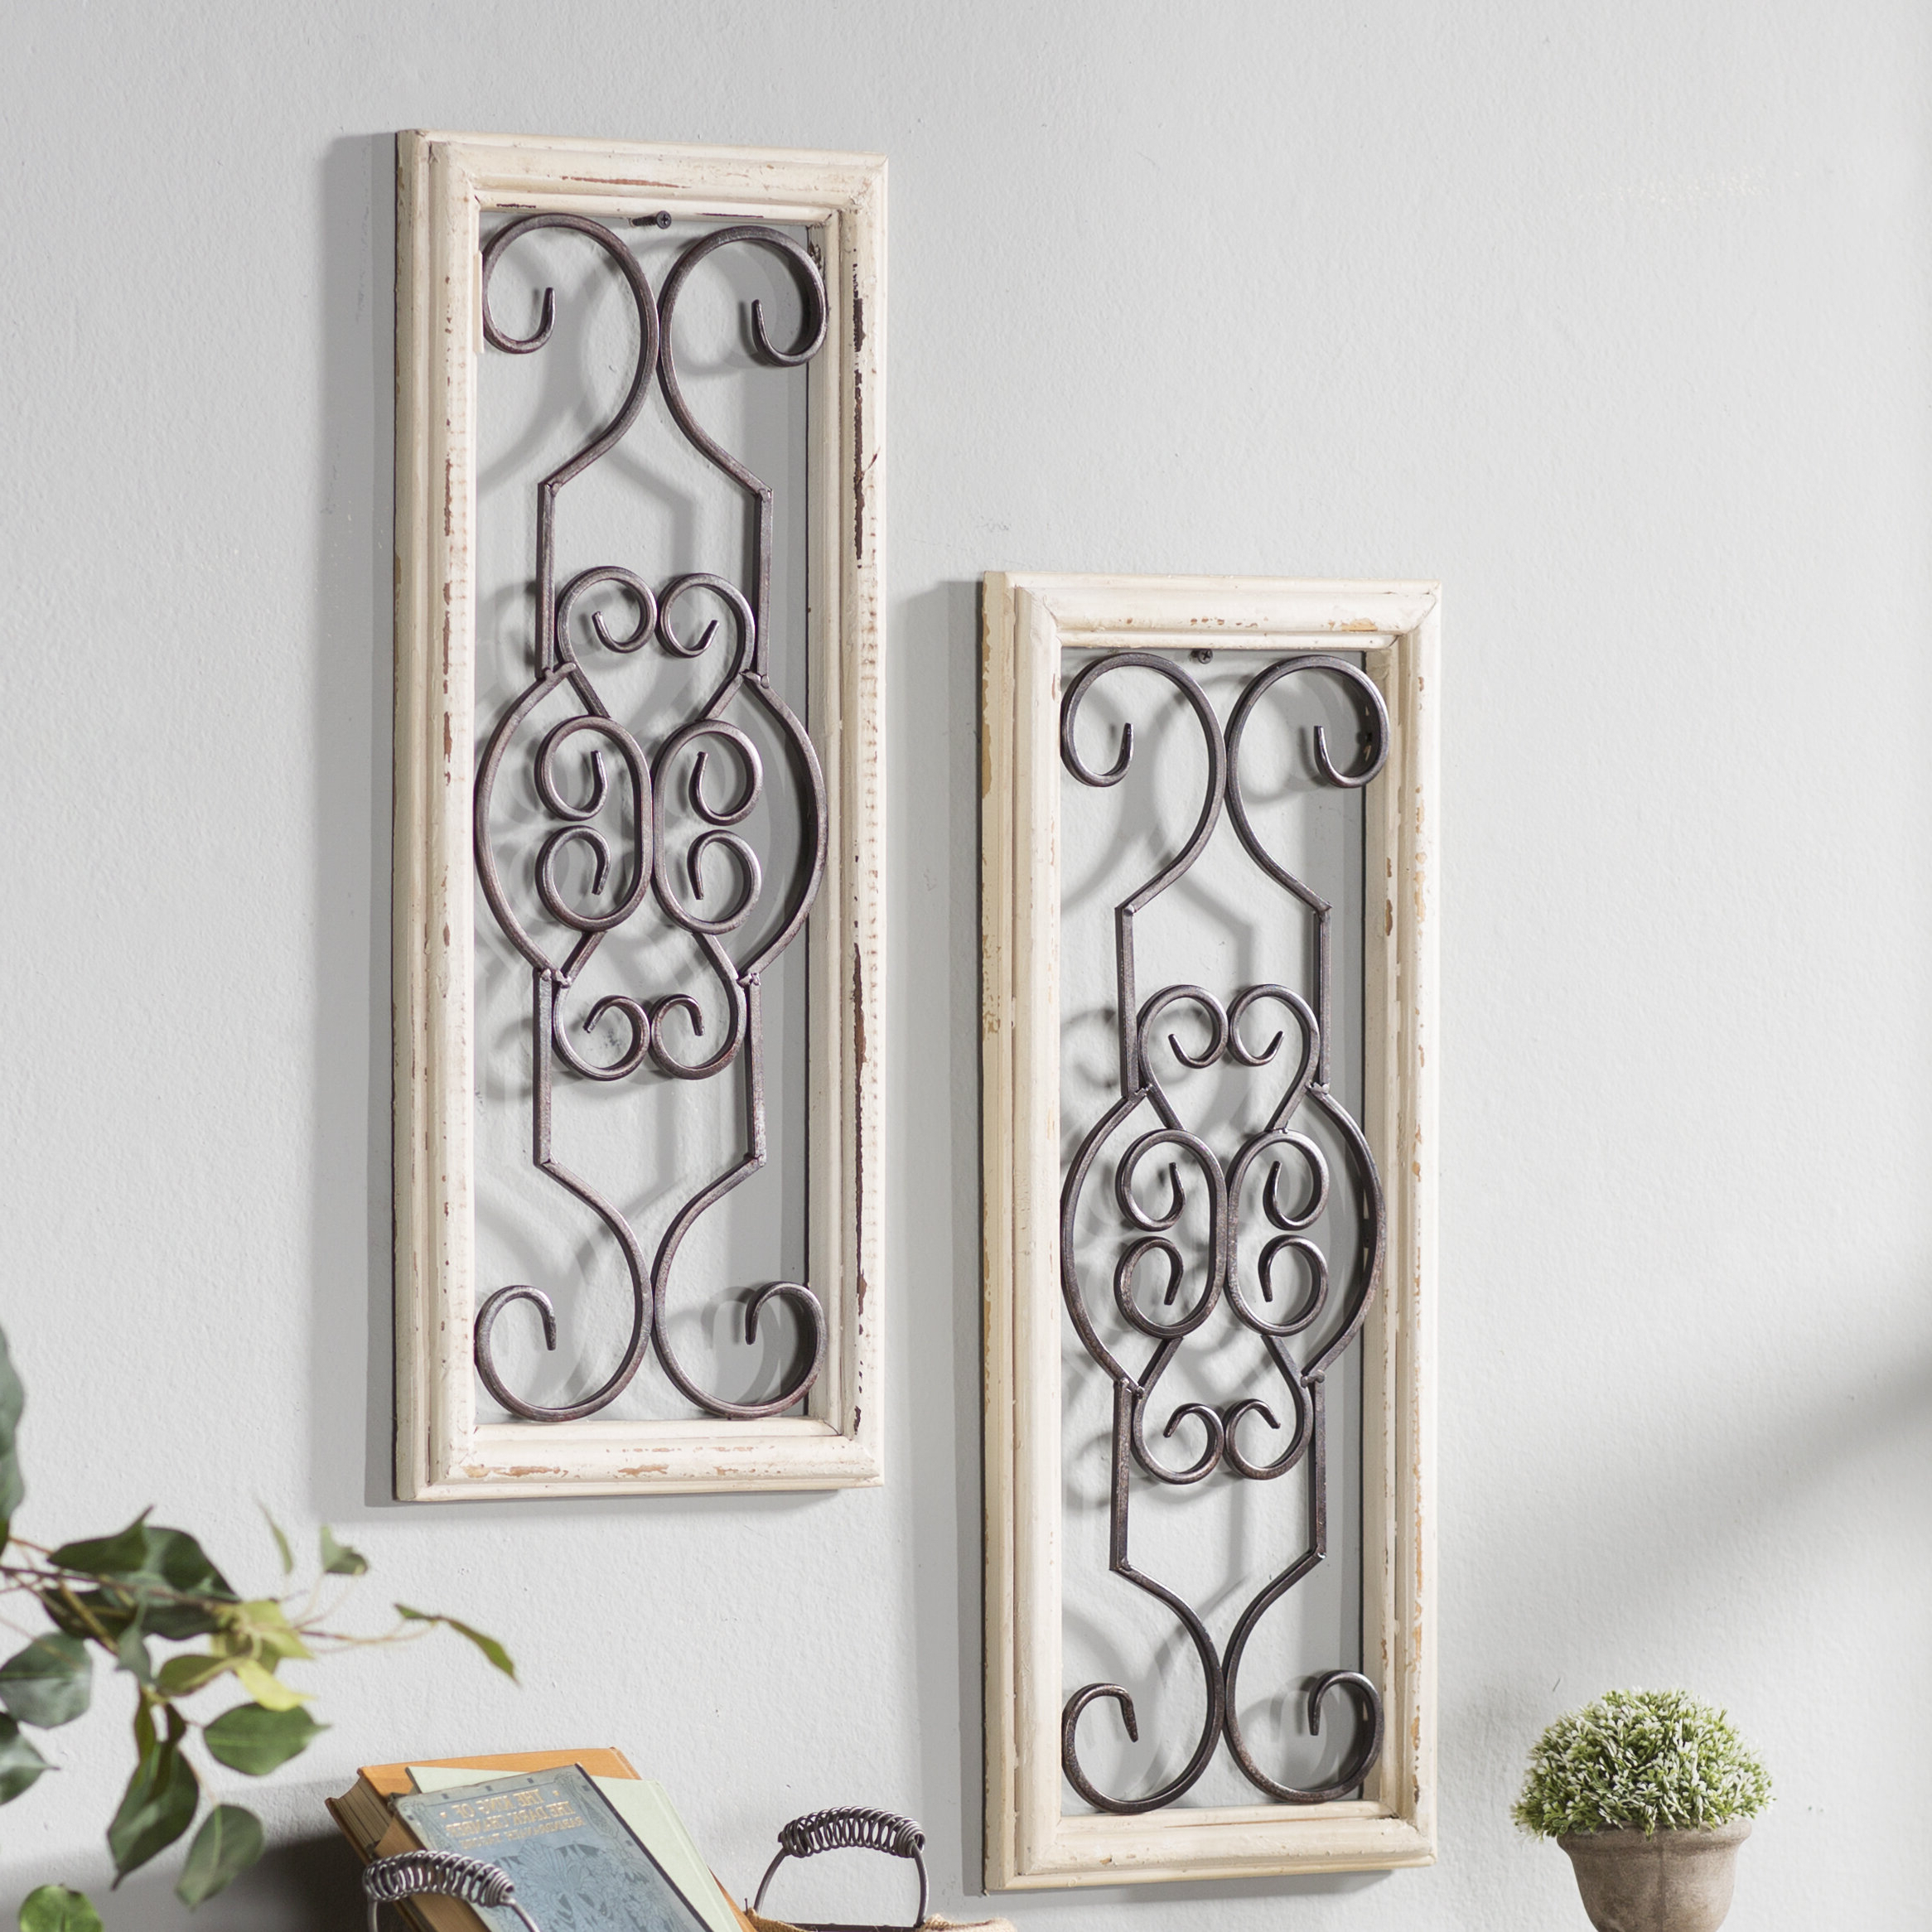 Wayfair Pertaining To 1 Piece Ortie Panel Wall Decor (Gallery 1 of 20)